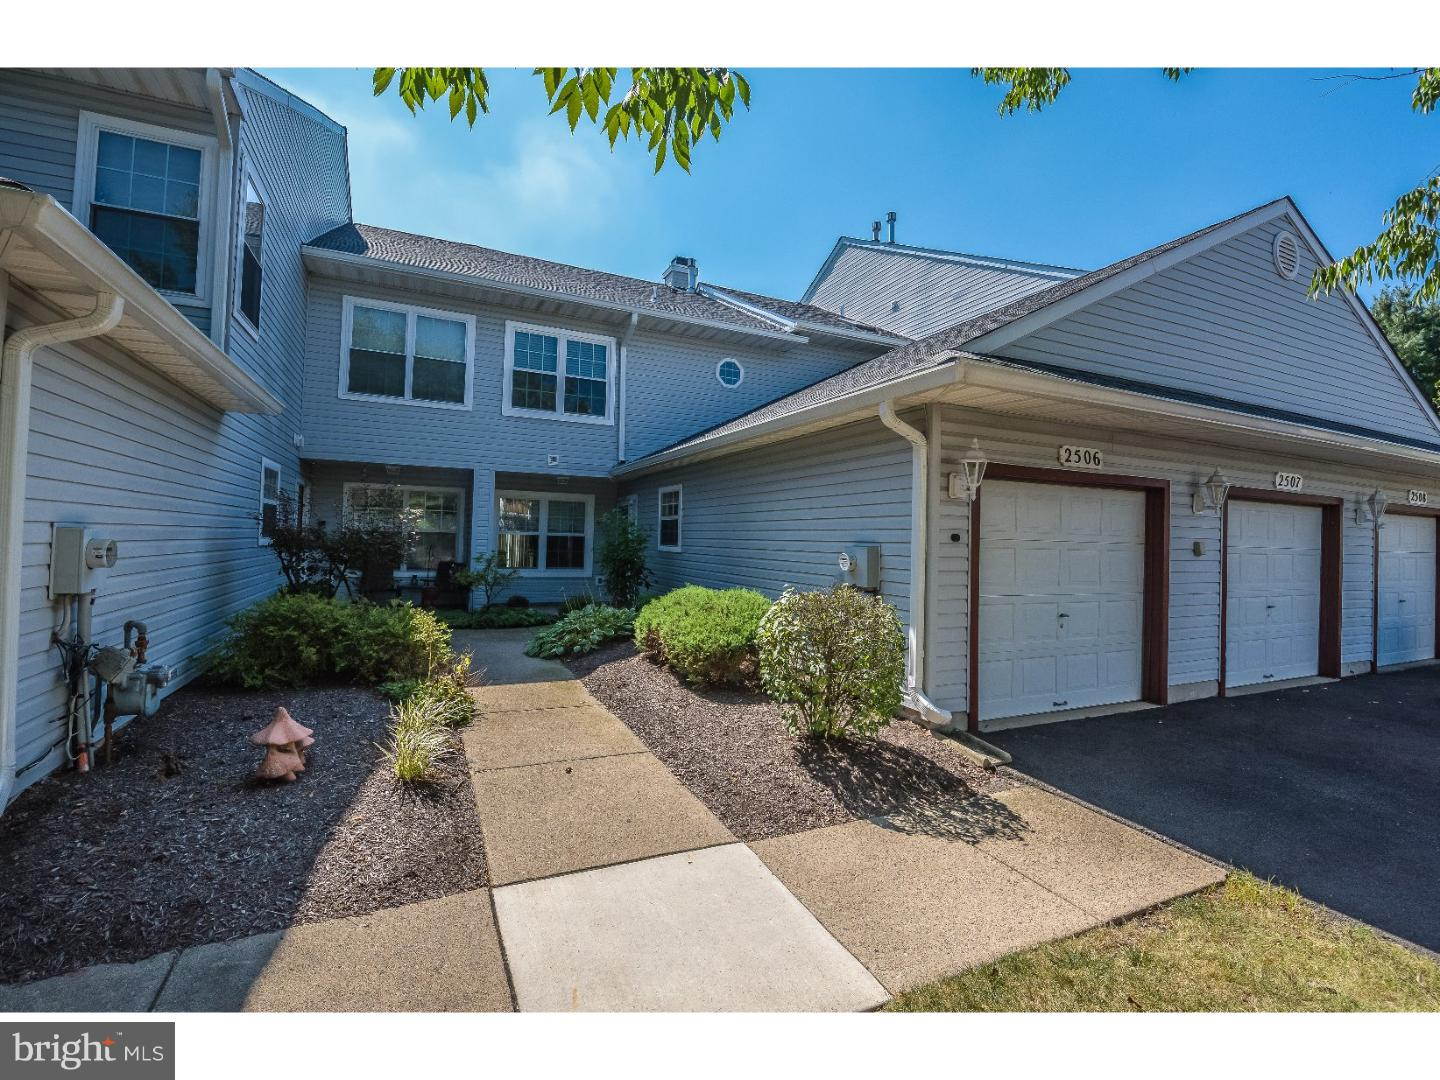 2506 WATERFORD RD #194, YARDLEY, PA